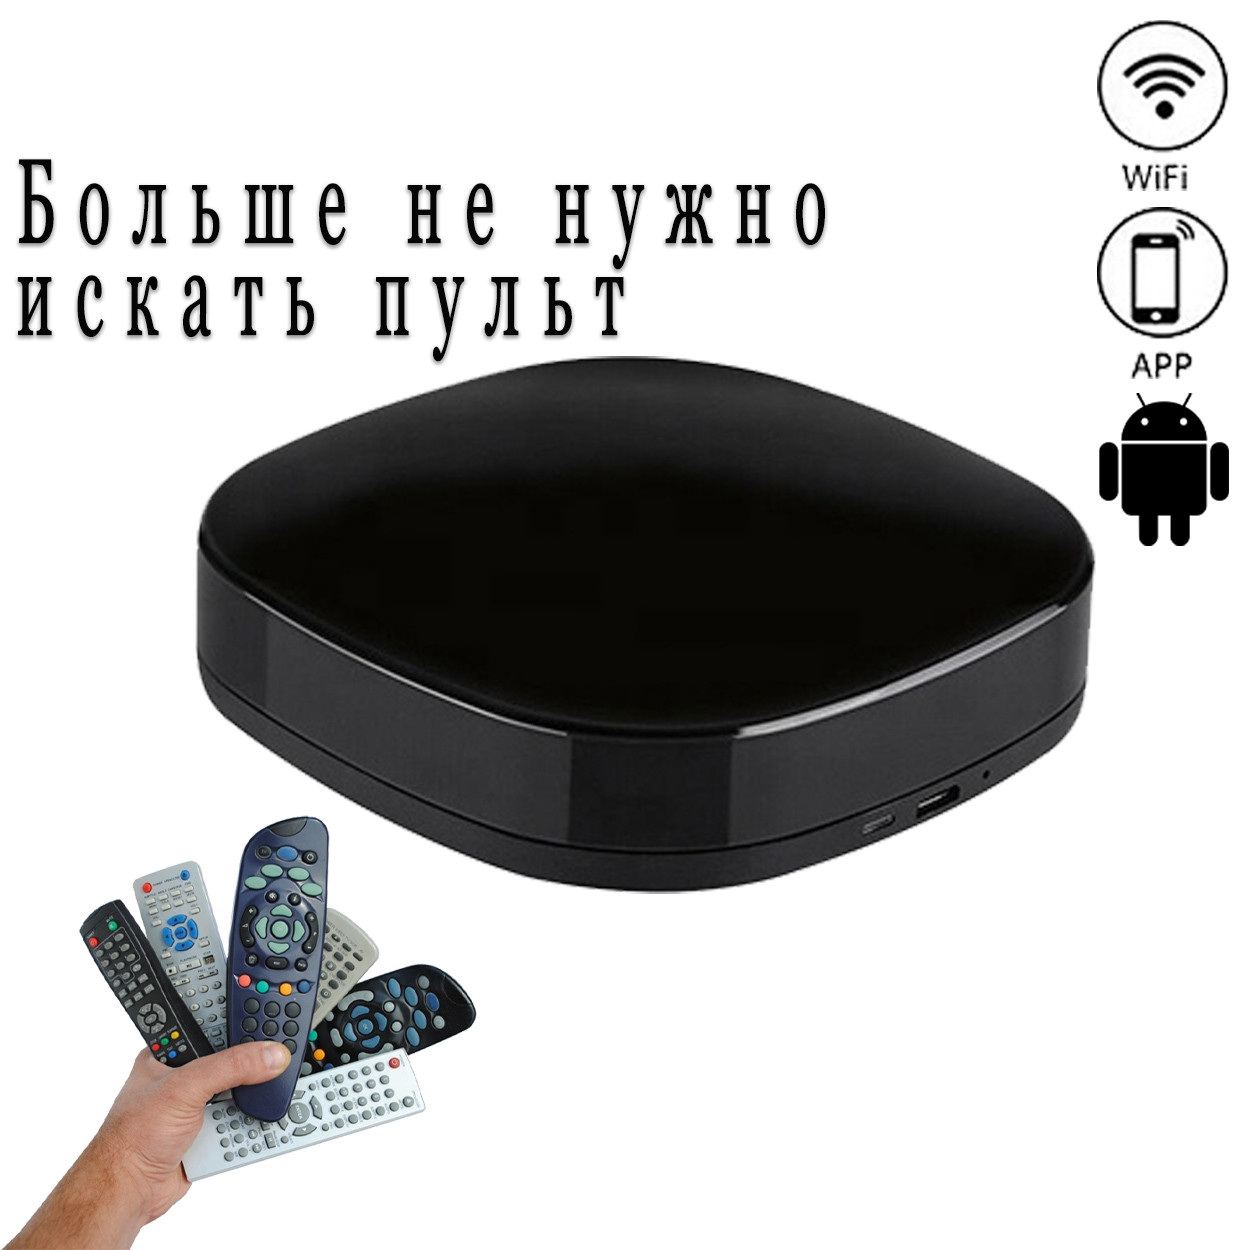 Универсальный пульт управления смарт пульт Adna Smart Remote Wi-Fi пульт дистанционного управления умный пульт